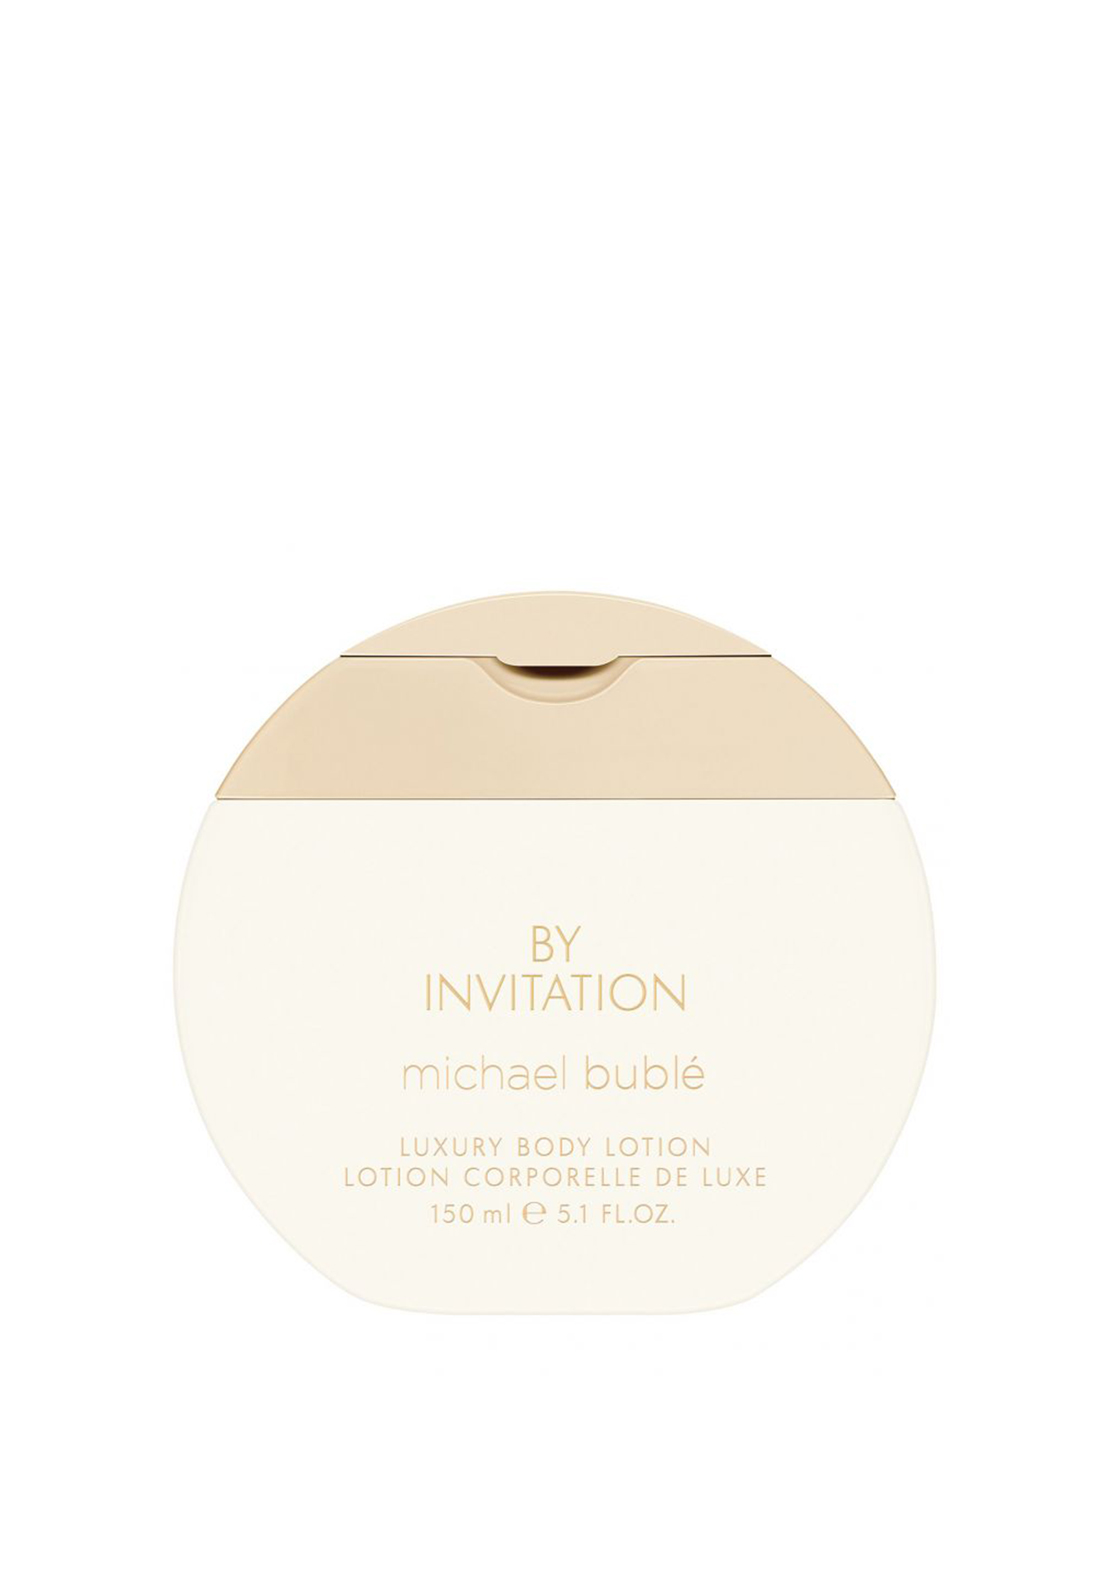 Michael Buble By Invitation Luxury Body Lotion 150ml